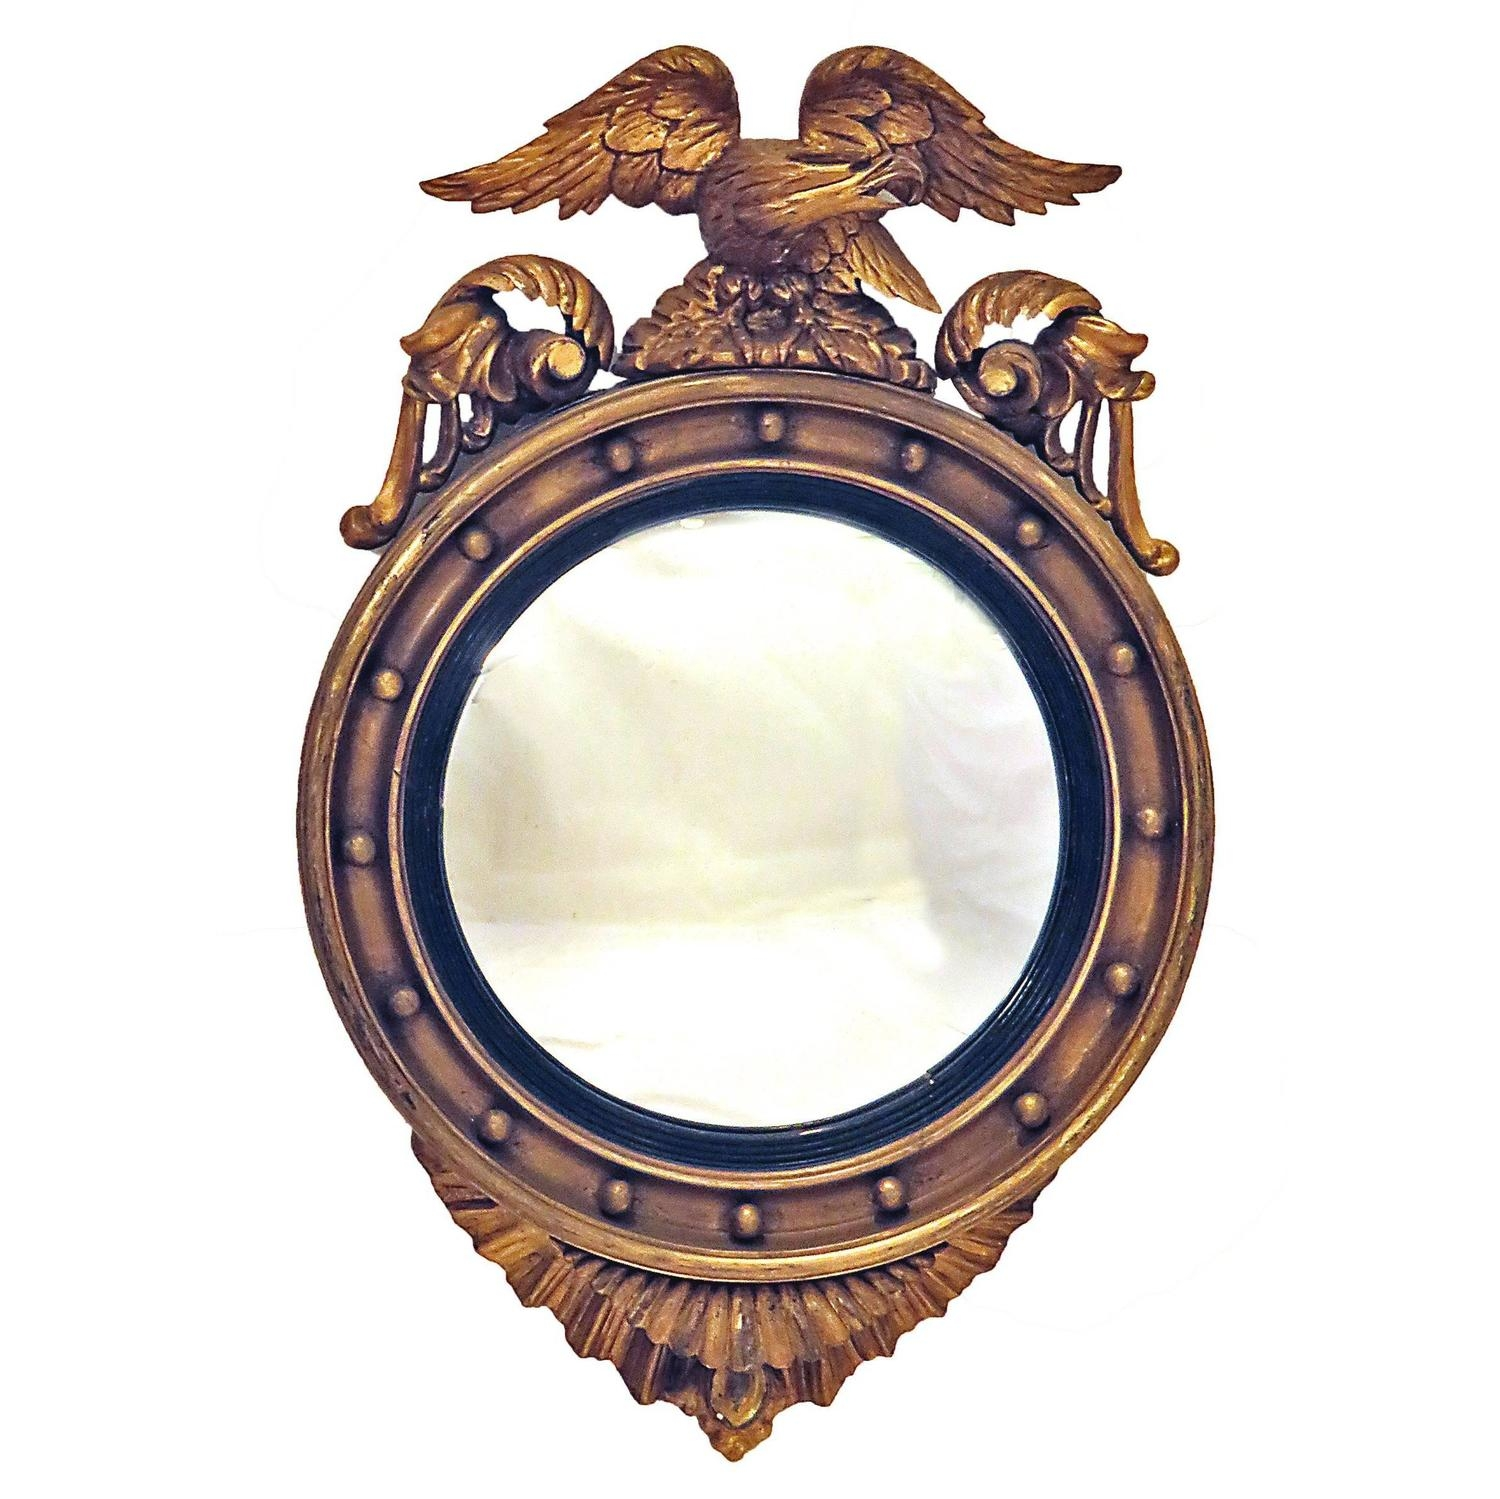 Antique And Vintage Convex Mirrors 361 For Sale At 1stdibs Intended For Antique Convex Mirrors For Sale (Image 2 of 15)